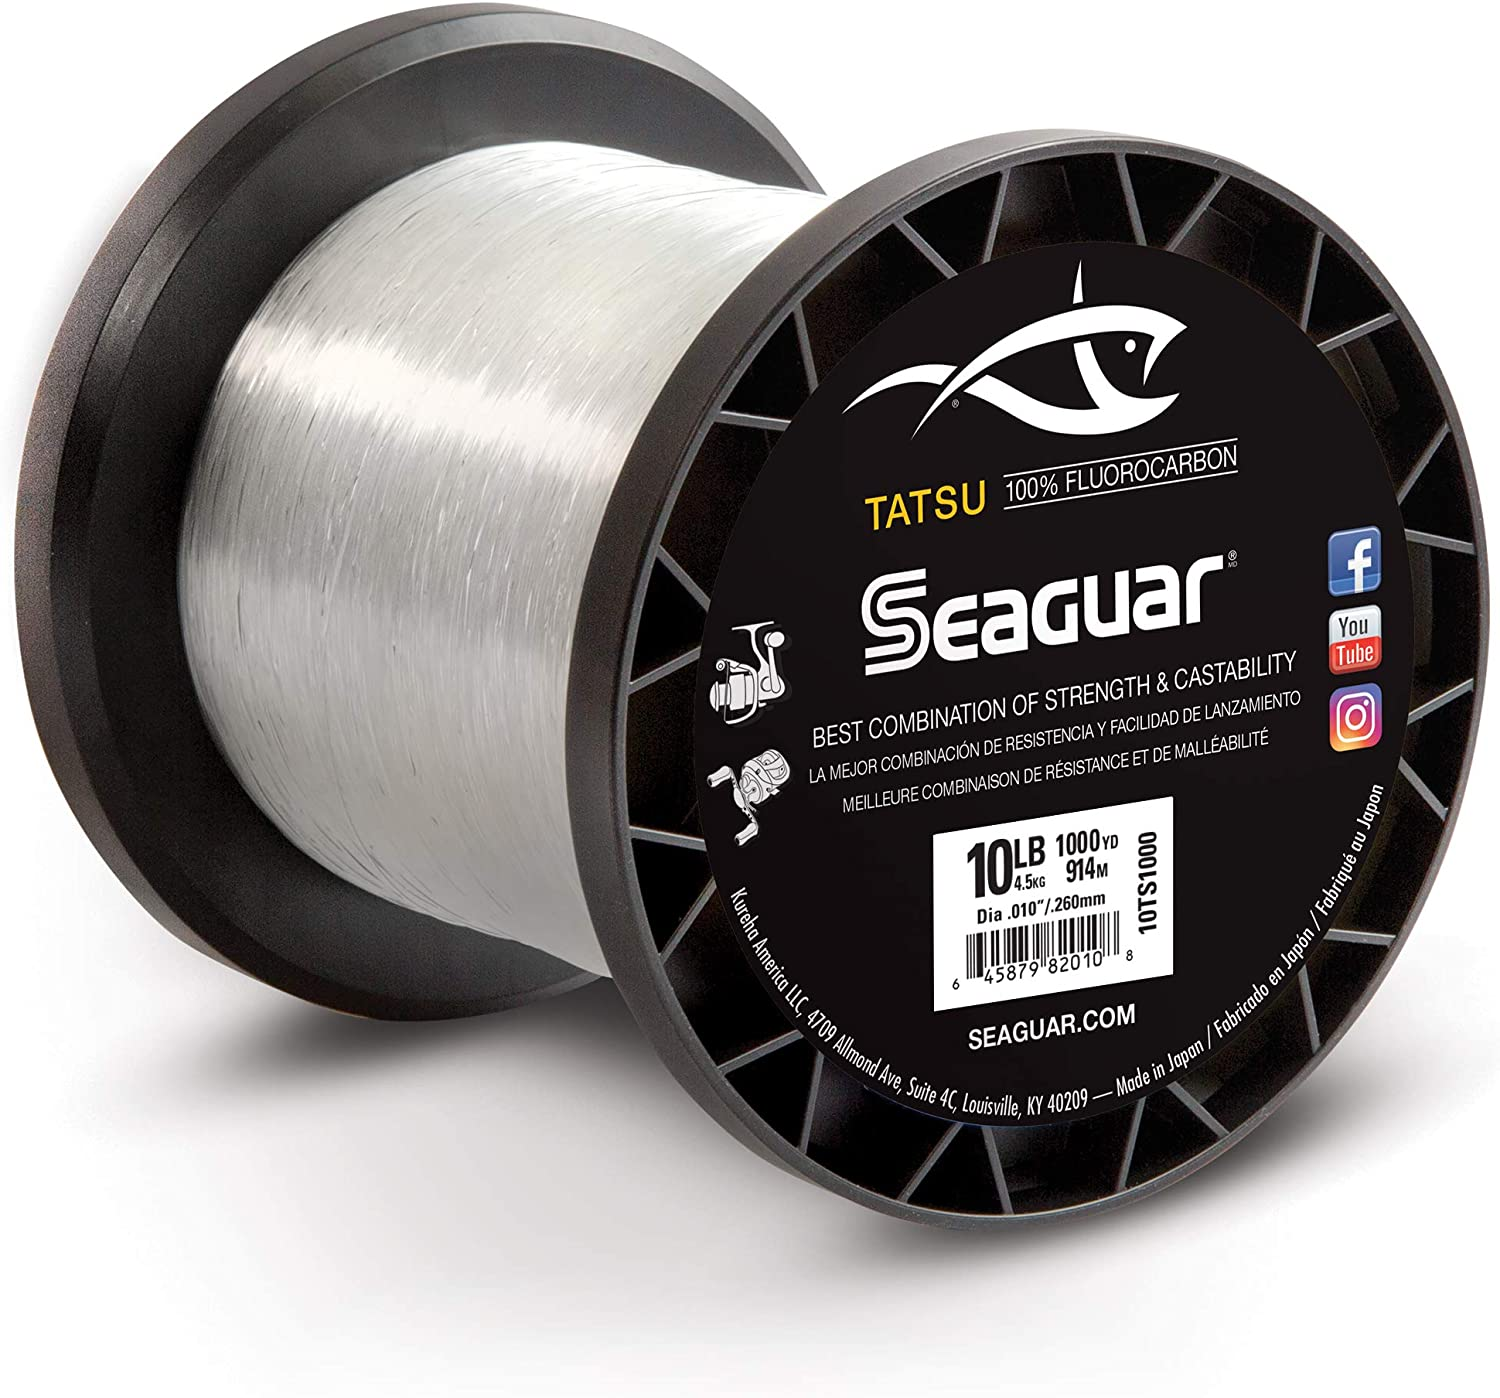 Seaguar TATSU 1000-Yards Fluorocarbon 10-Pound Fishing Trust Line SEAL limited product